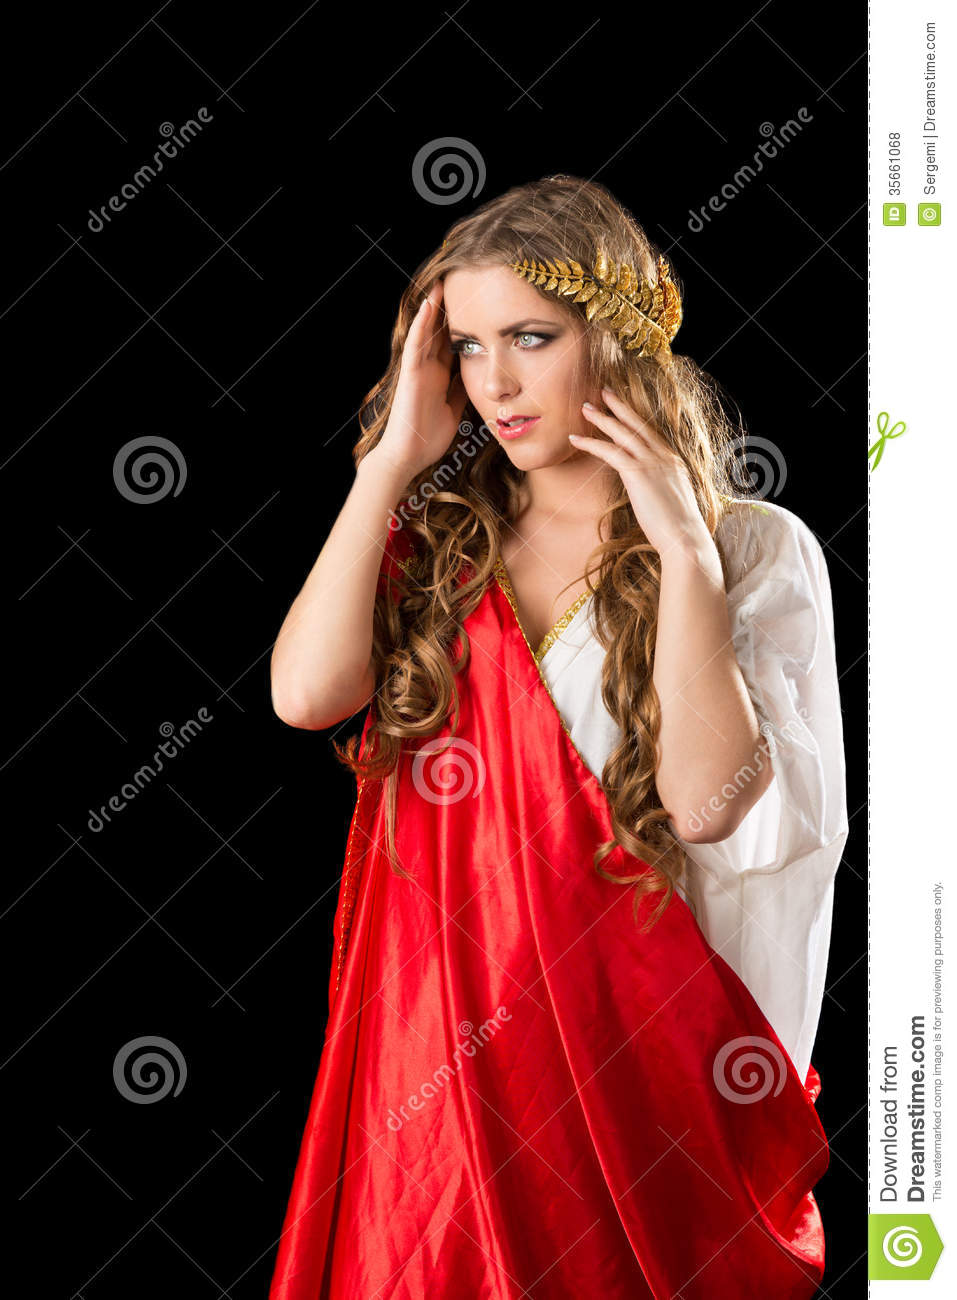 Ancient Greece Woman Royalty Free Stock Photos Image